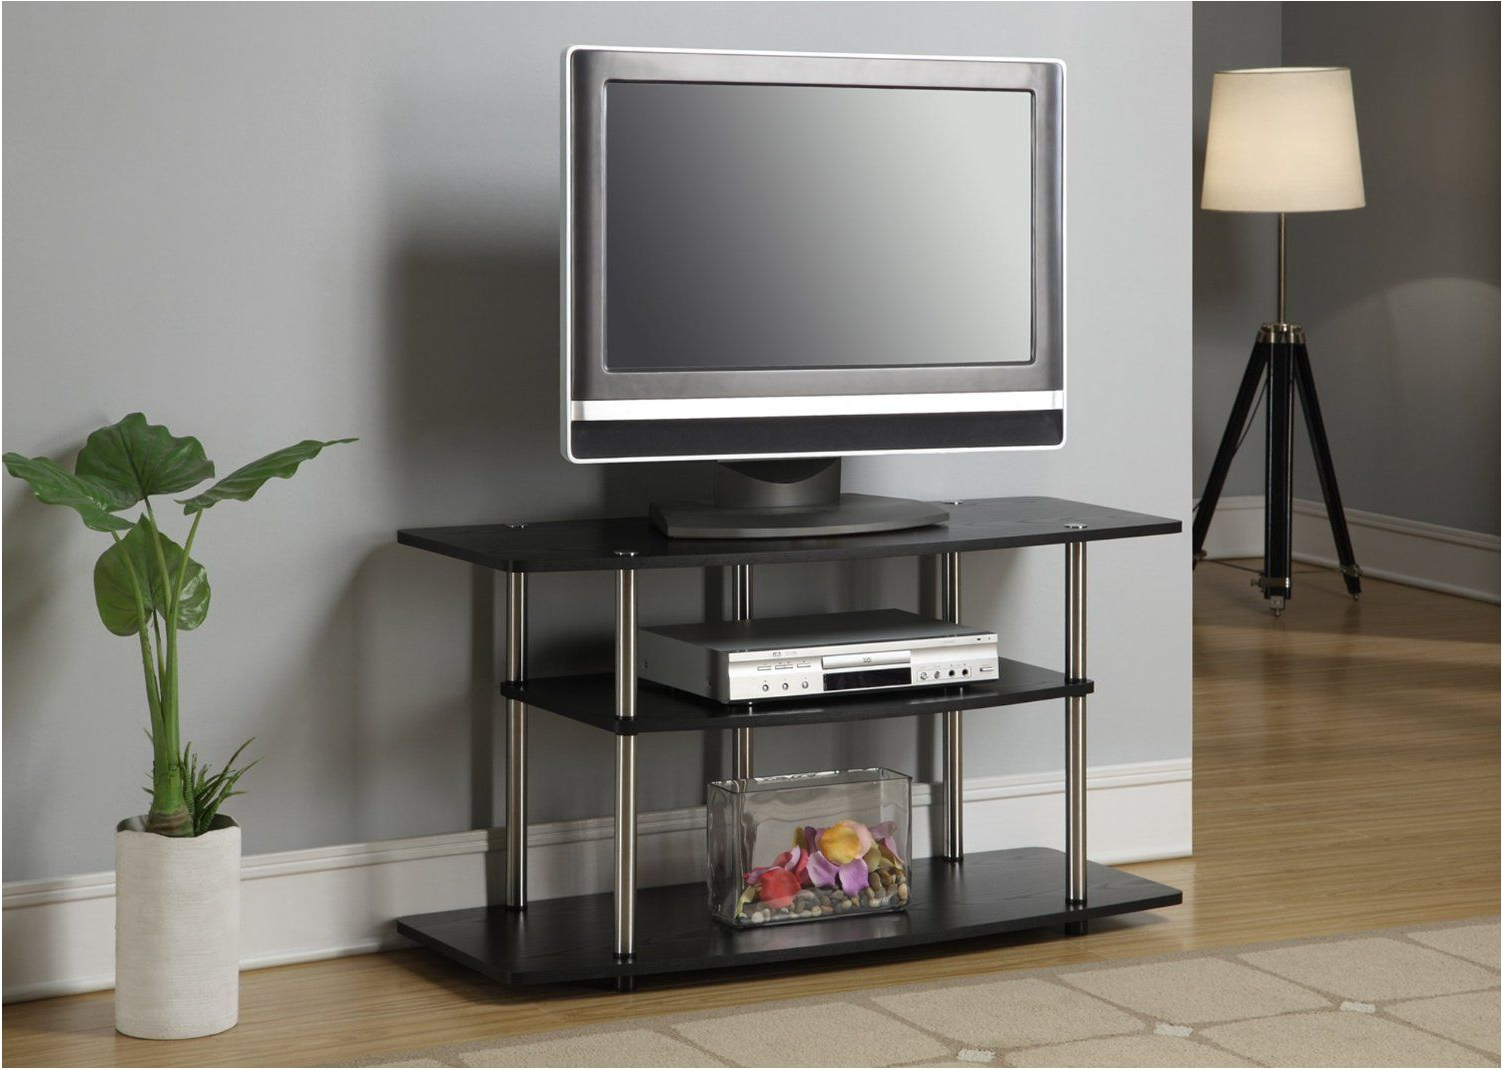 Small Tv Stands On Wheels Inside 2018 Magnificent Tv Stands Modern Tv Stands For 40 Inch Flat Screen With (Gallery 13 of 20)